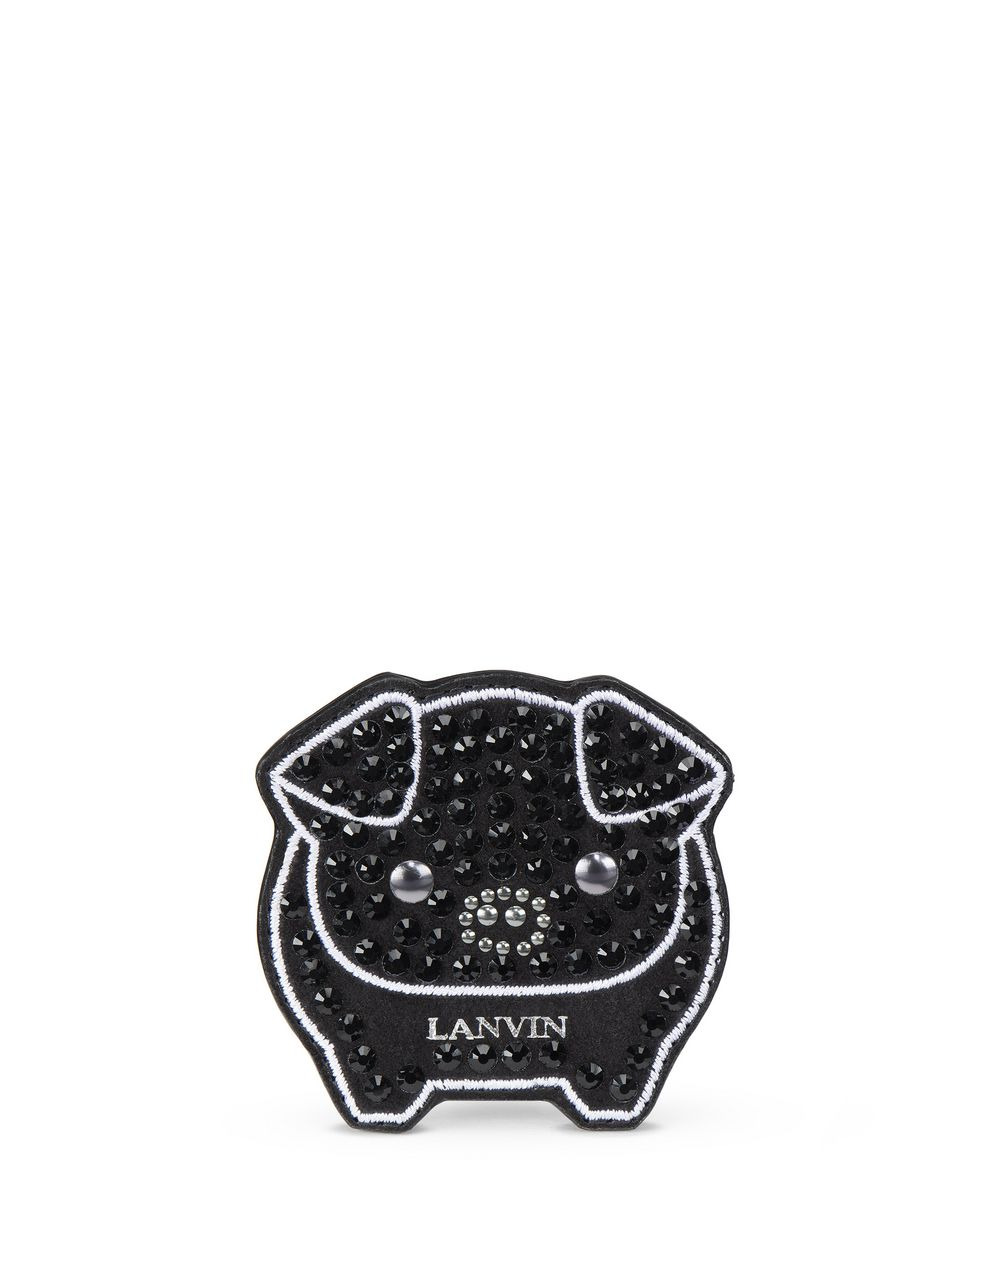 BLACK EMBROIDERED SHOE PATCH - Lanvin